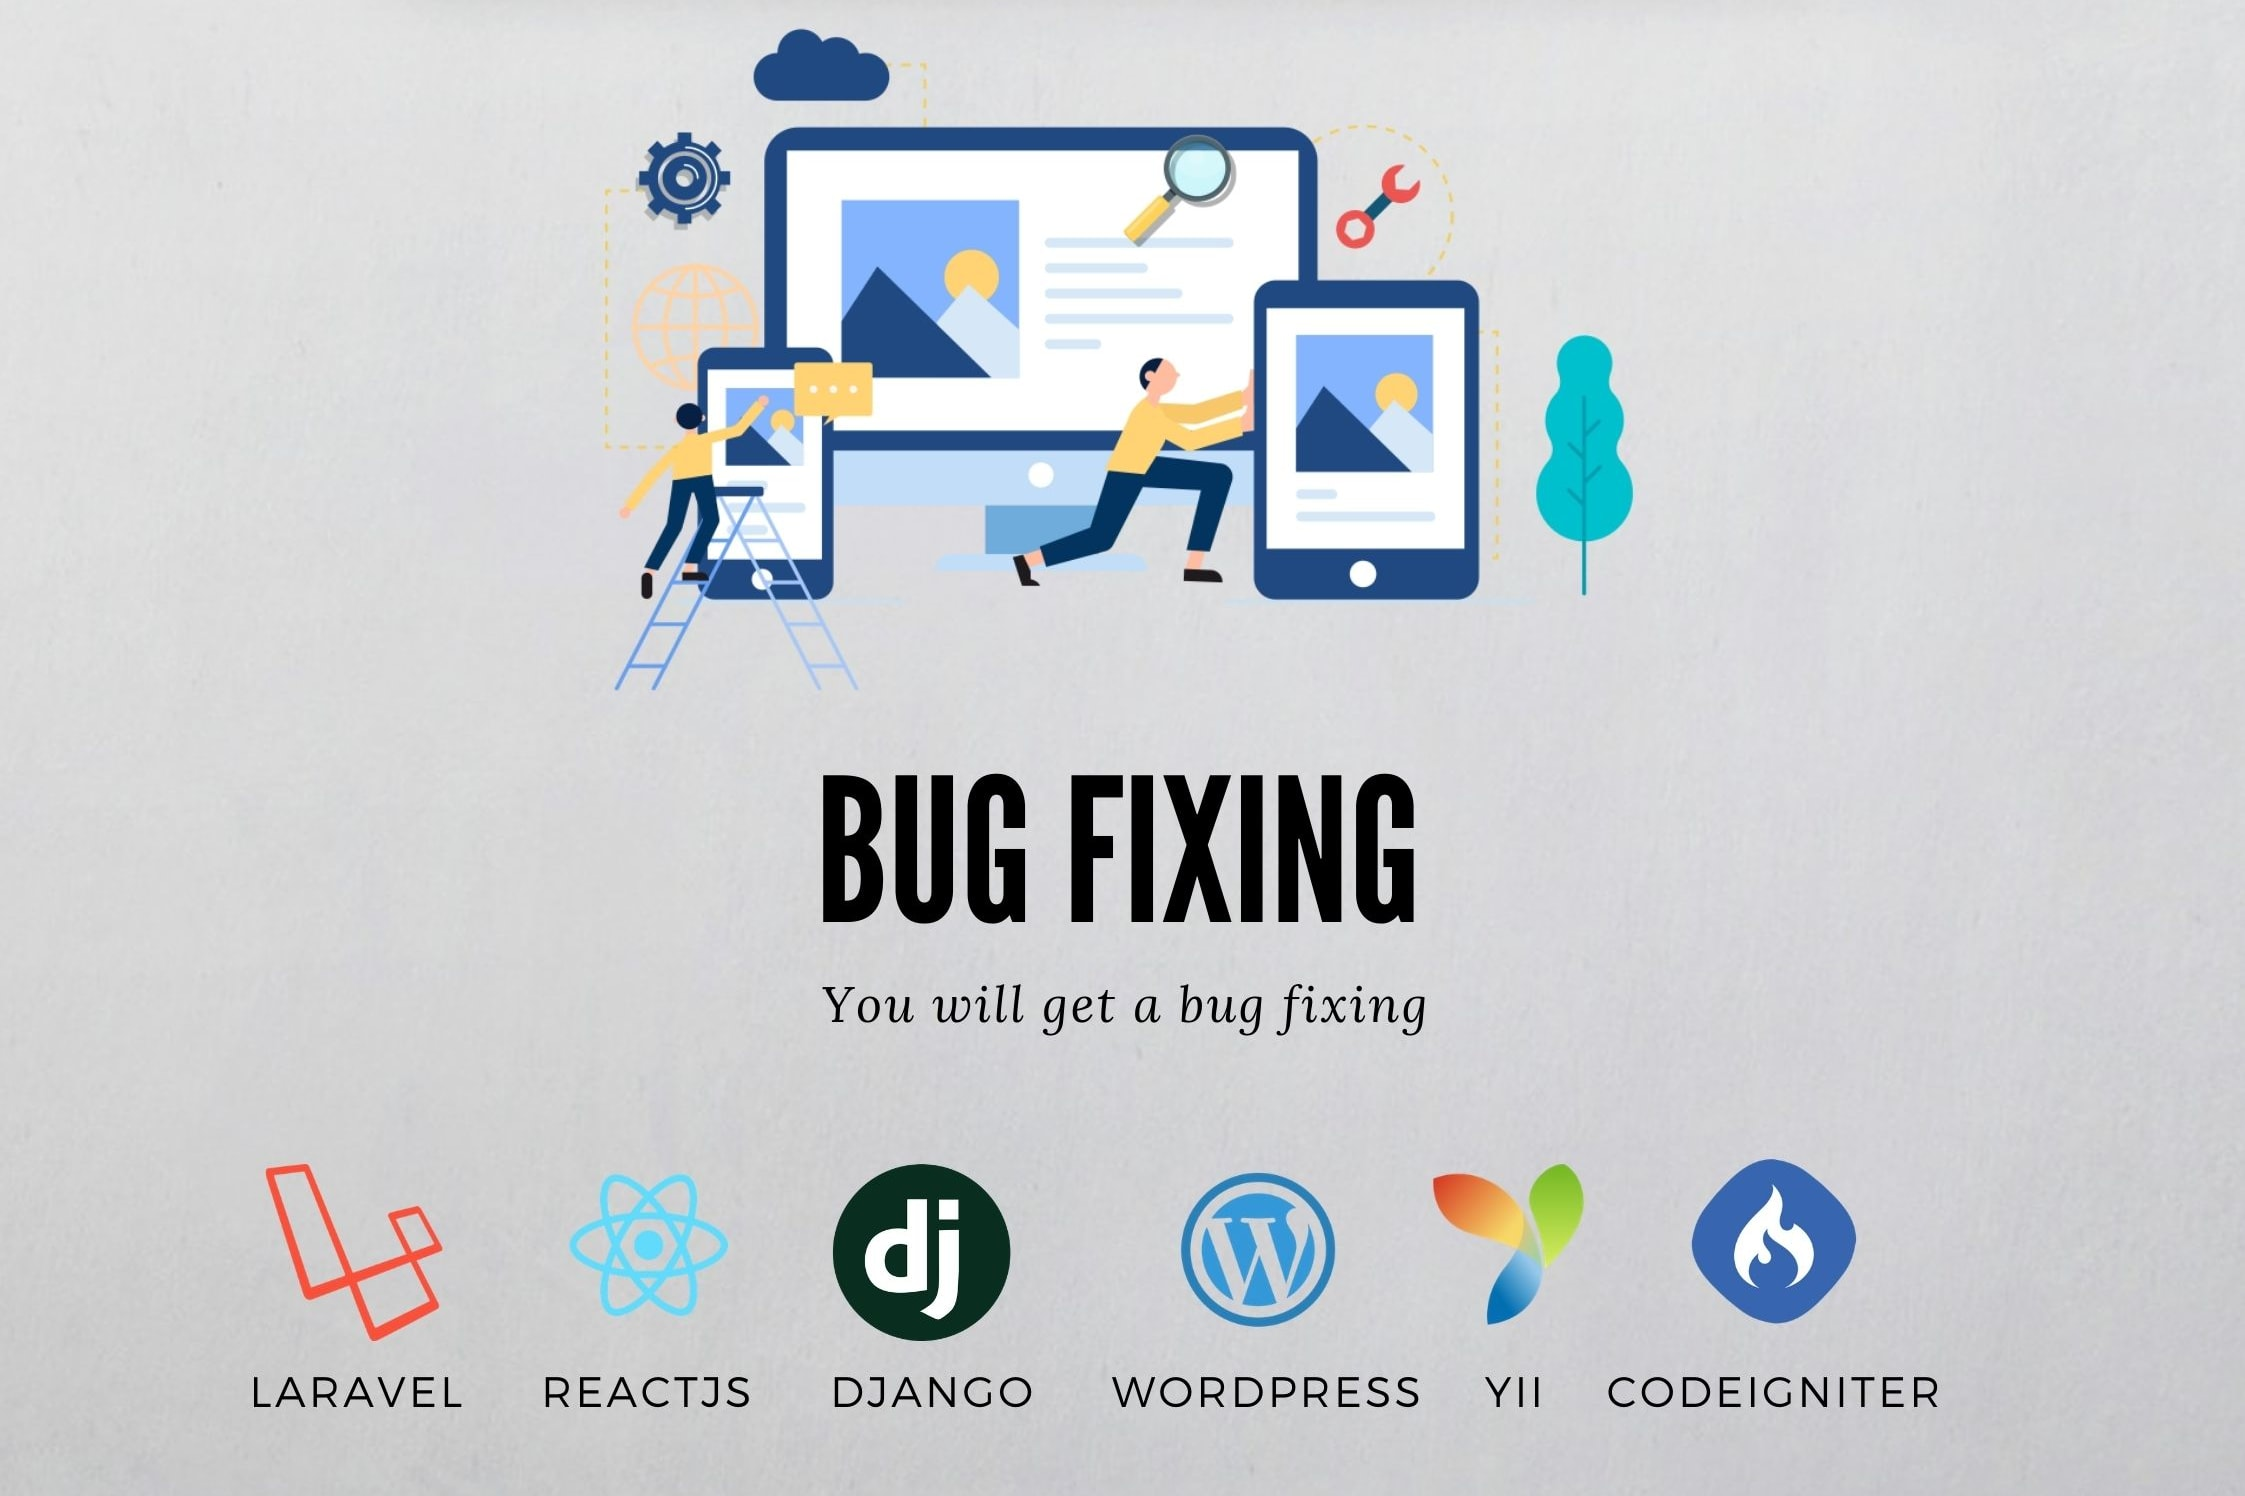 Portfolio for Bug fixing for Laravel, Reactjs, Django